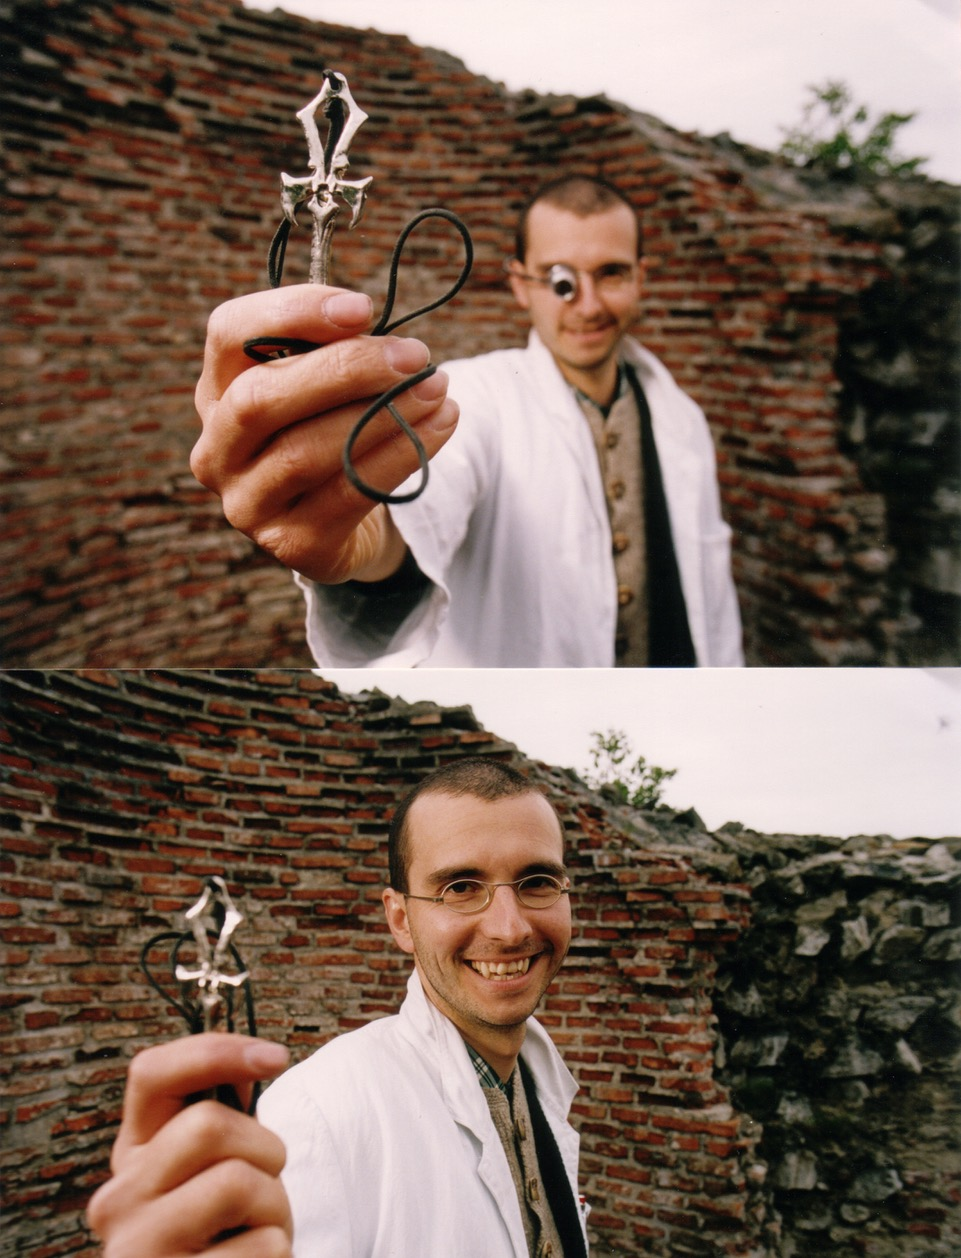 mark benecke with vampire cross in transylvania castle bran national geographic press photo.jpeg